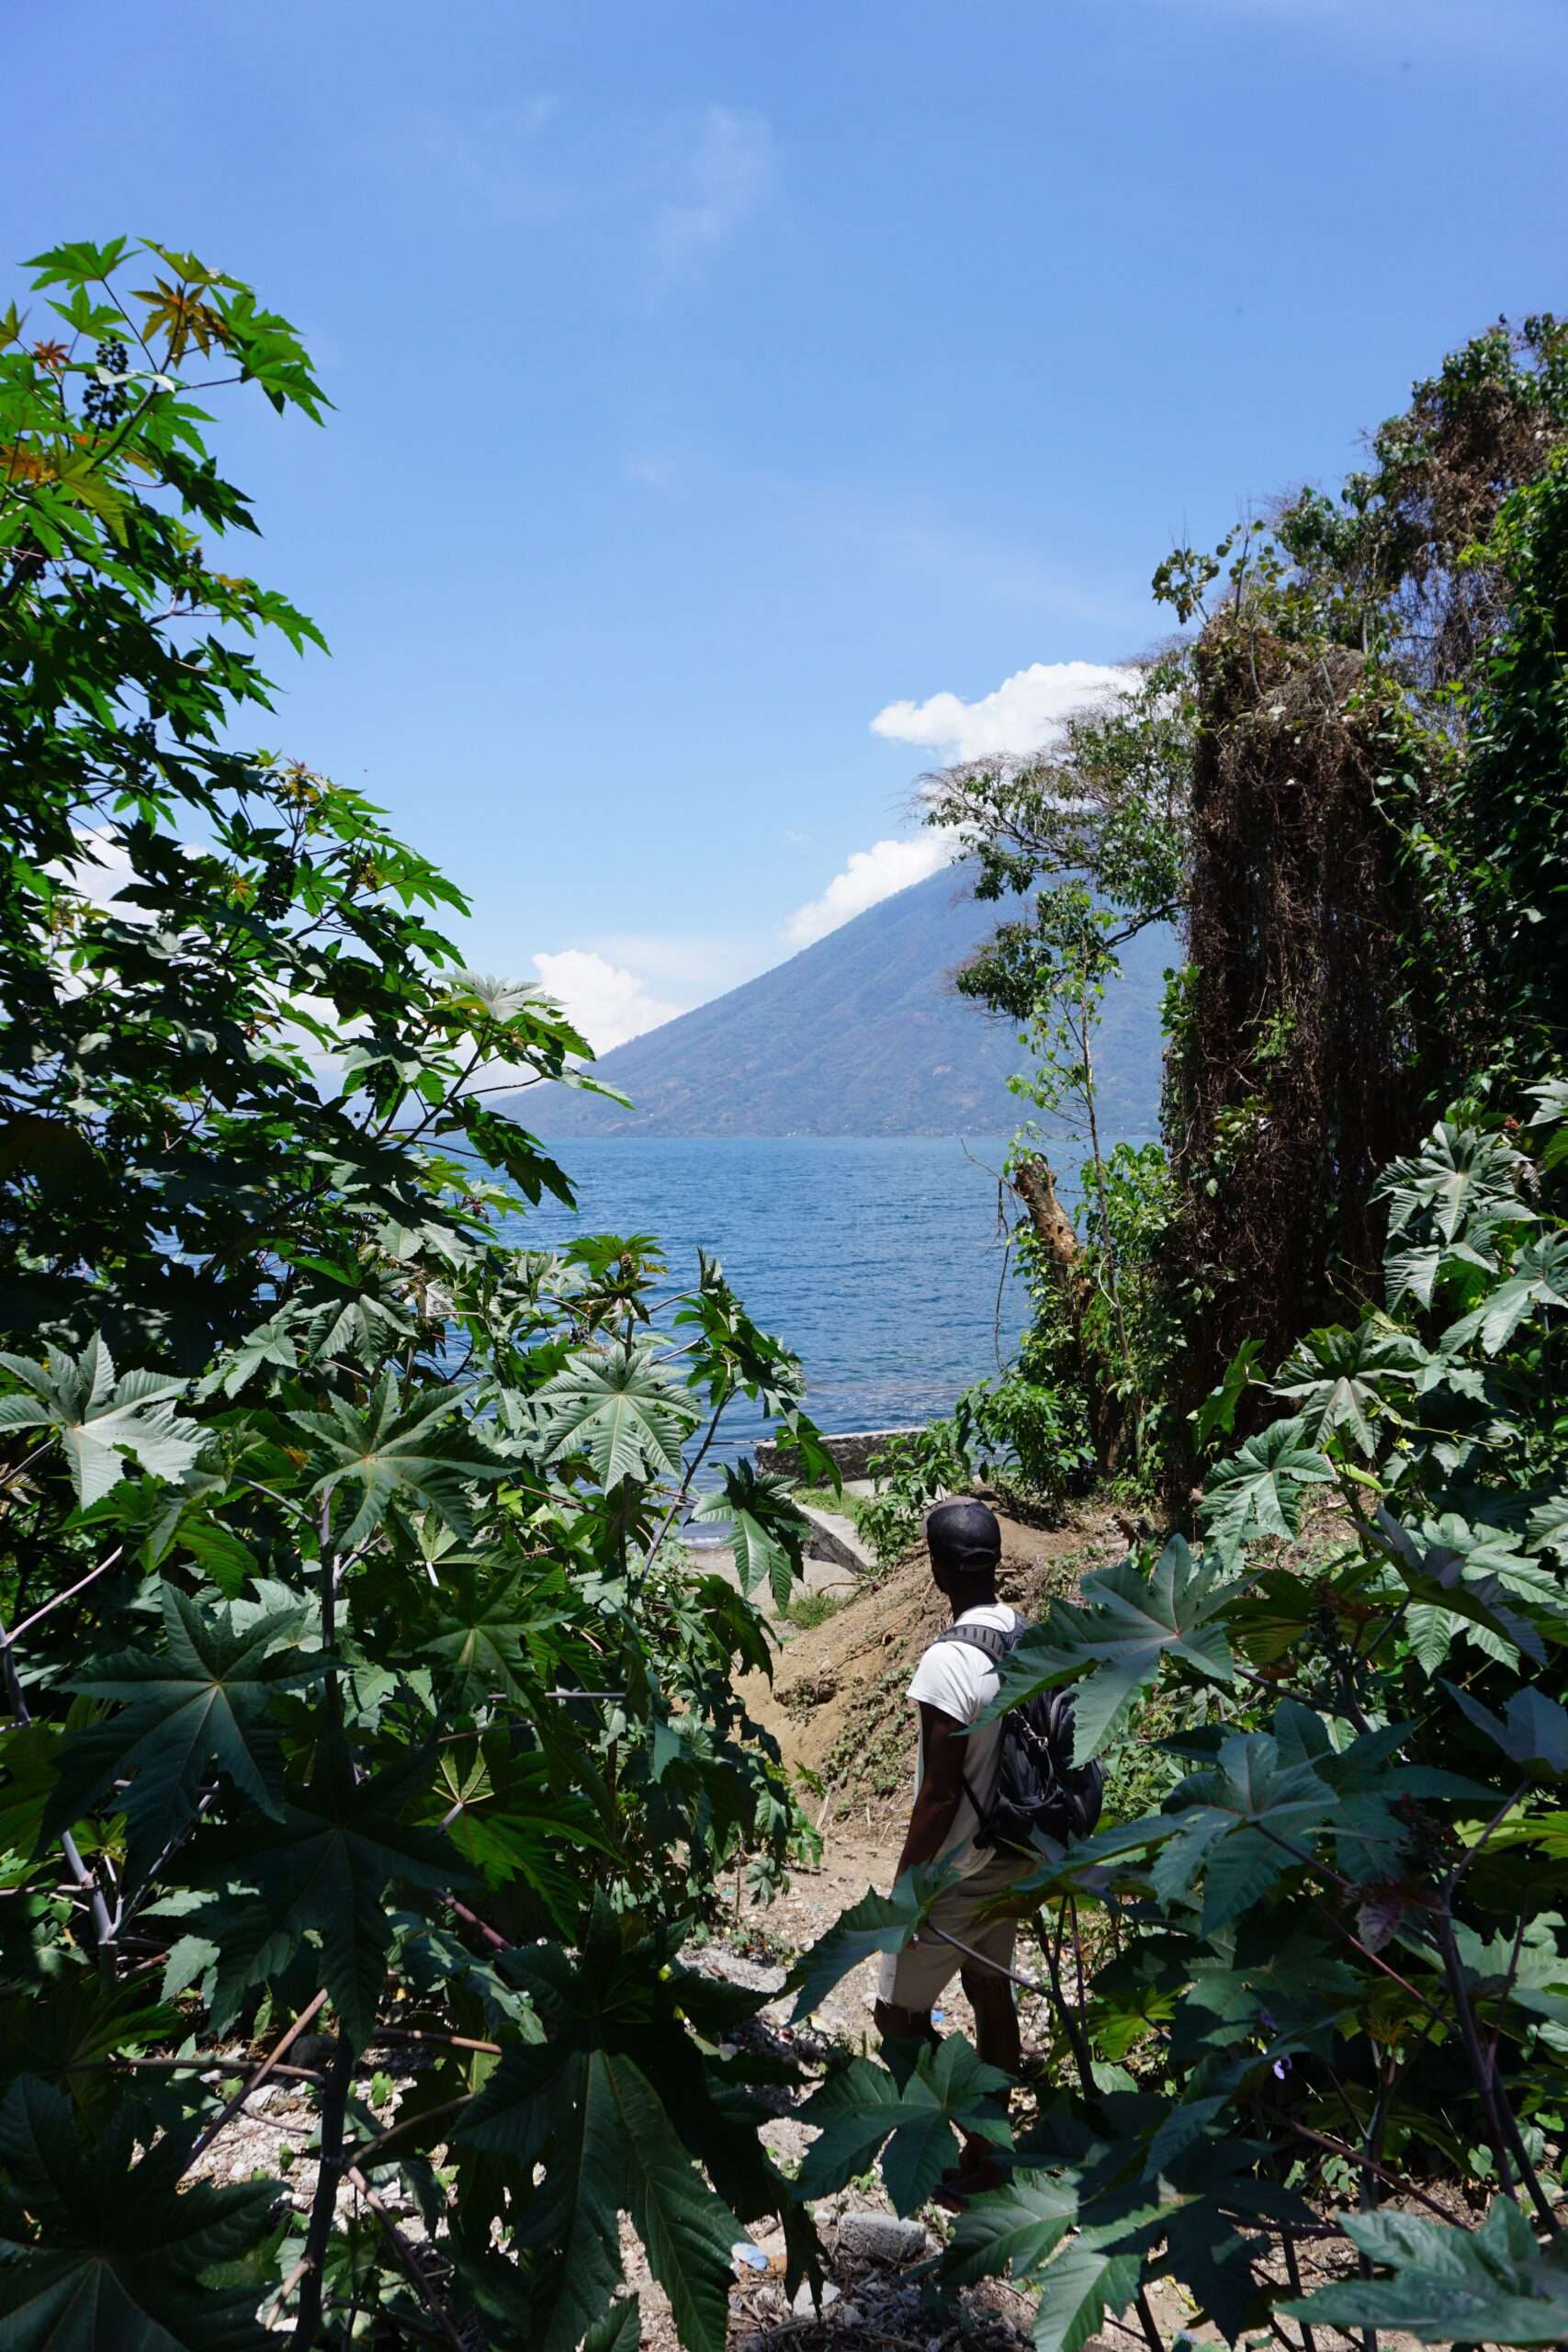 man with a backpack amongst the trees, looking out to the water and volcano at Lake Atitlan